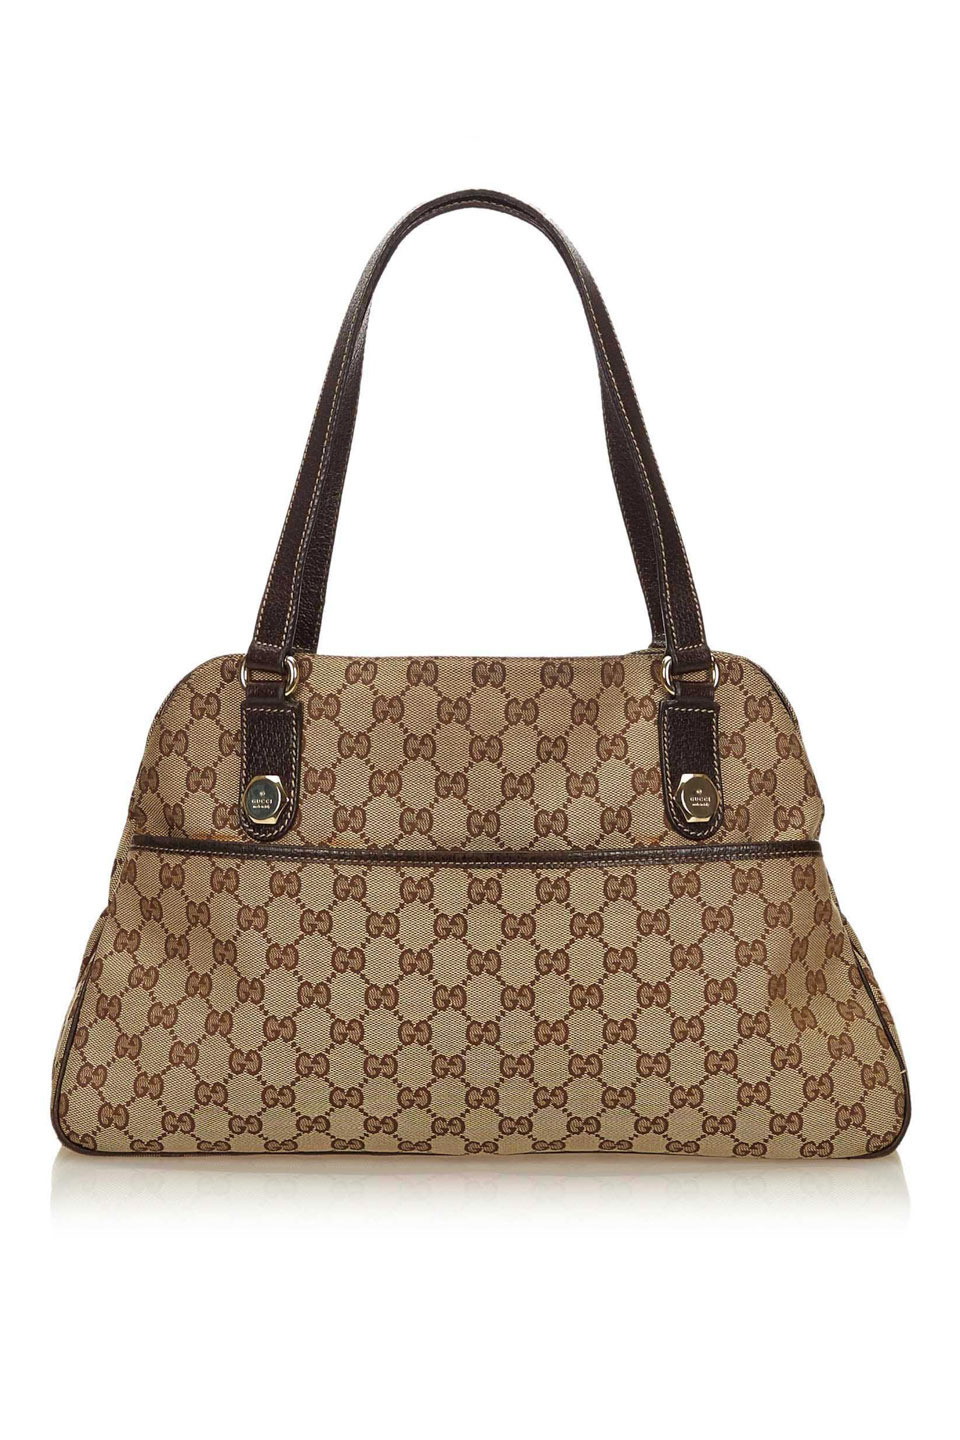 GUCCI GUCCISSIMA CANVAS SHOULDER BAG IN ...